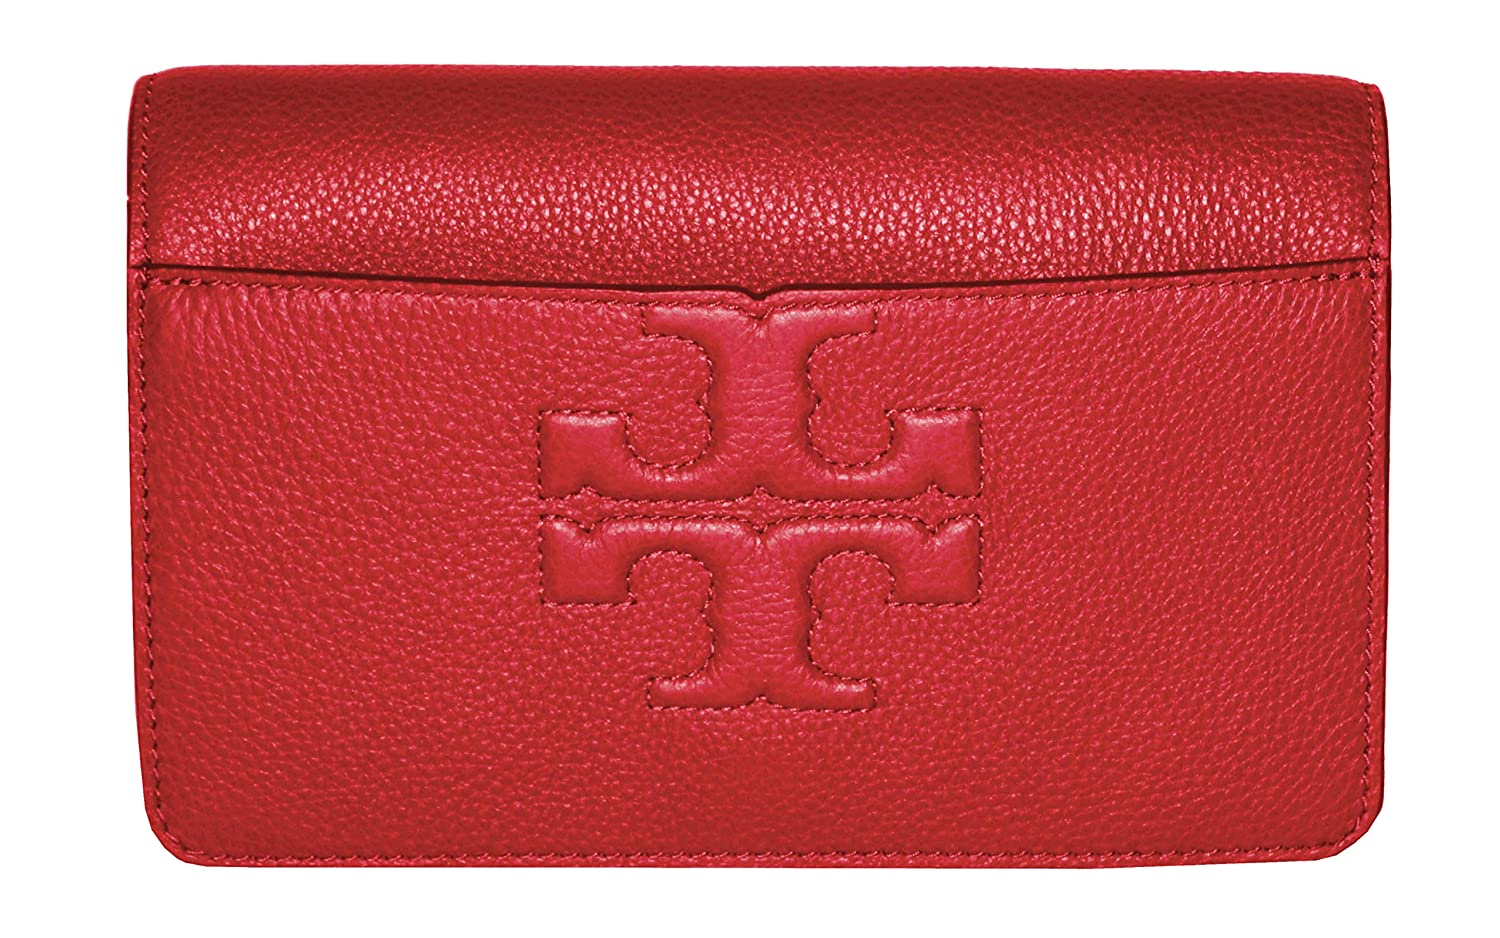 1be99724db8 Amazon.com  Tory Burch Bombe T Logo Small Leather Cross Body Bag Women s  Handbag (Liberty Red)  Shoes